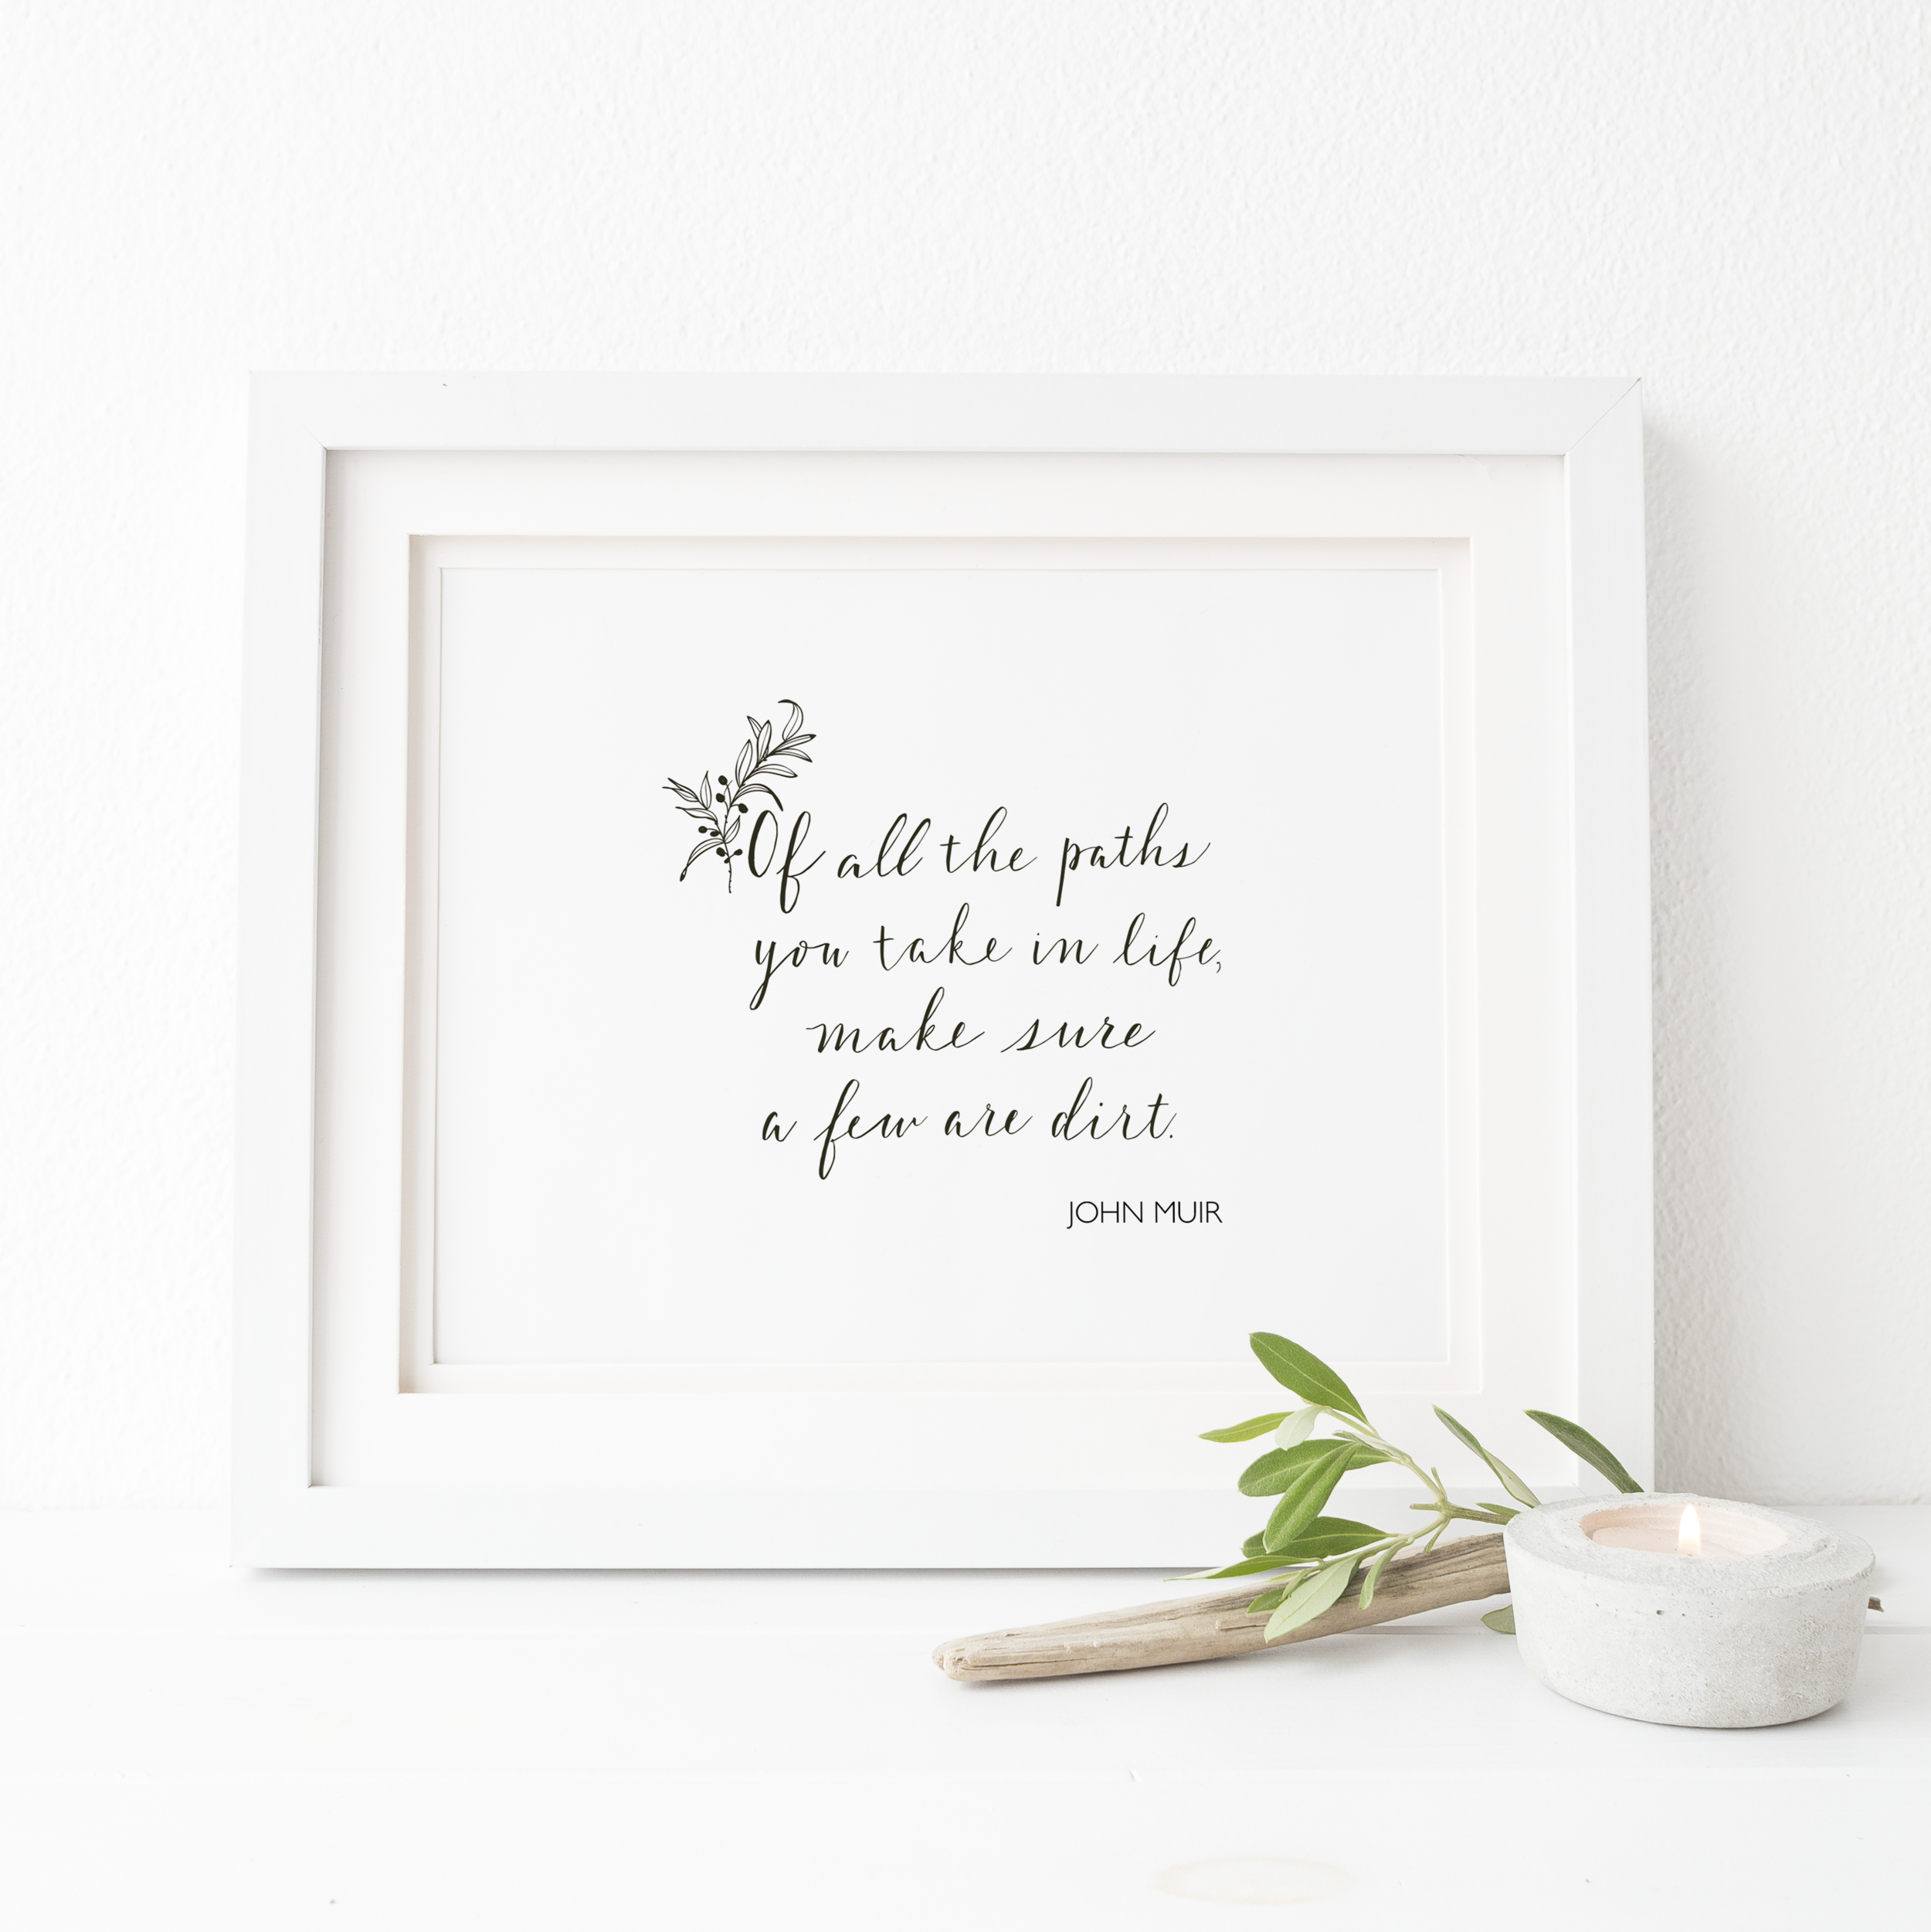 White framed print of John Muir quote, of all the paths...make sure a few are dirt.